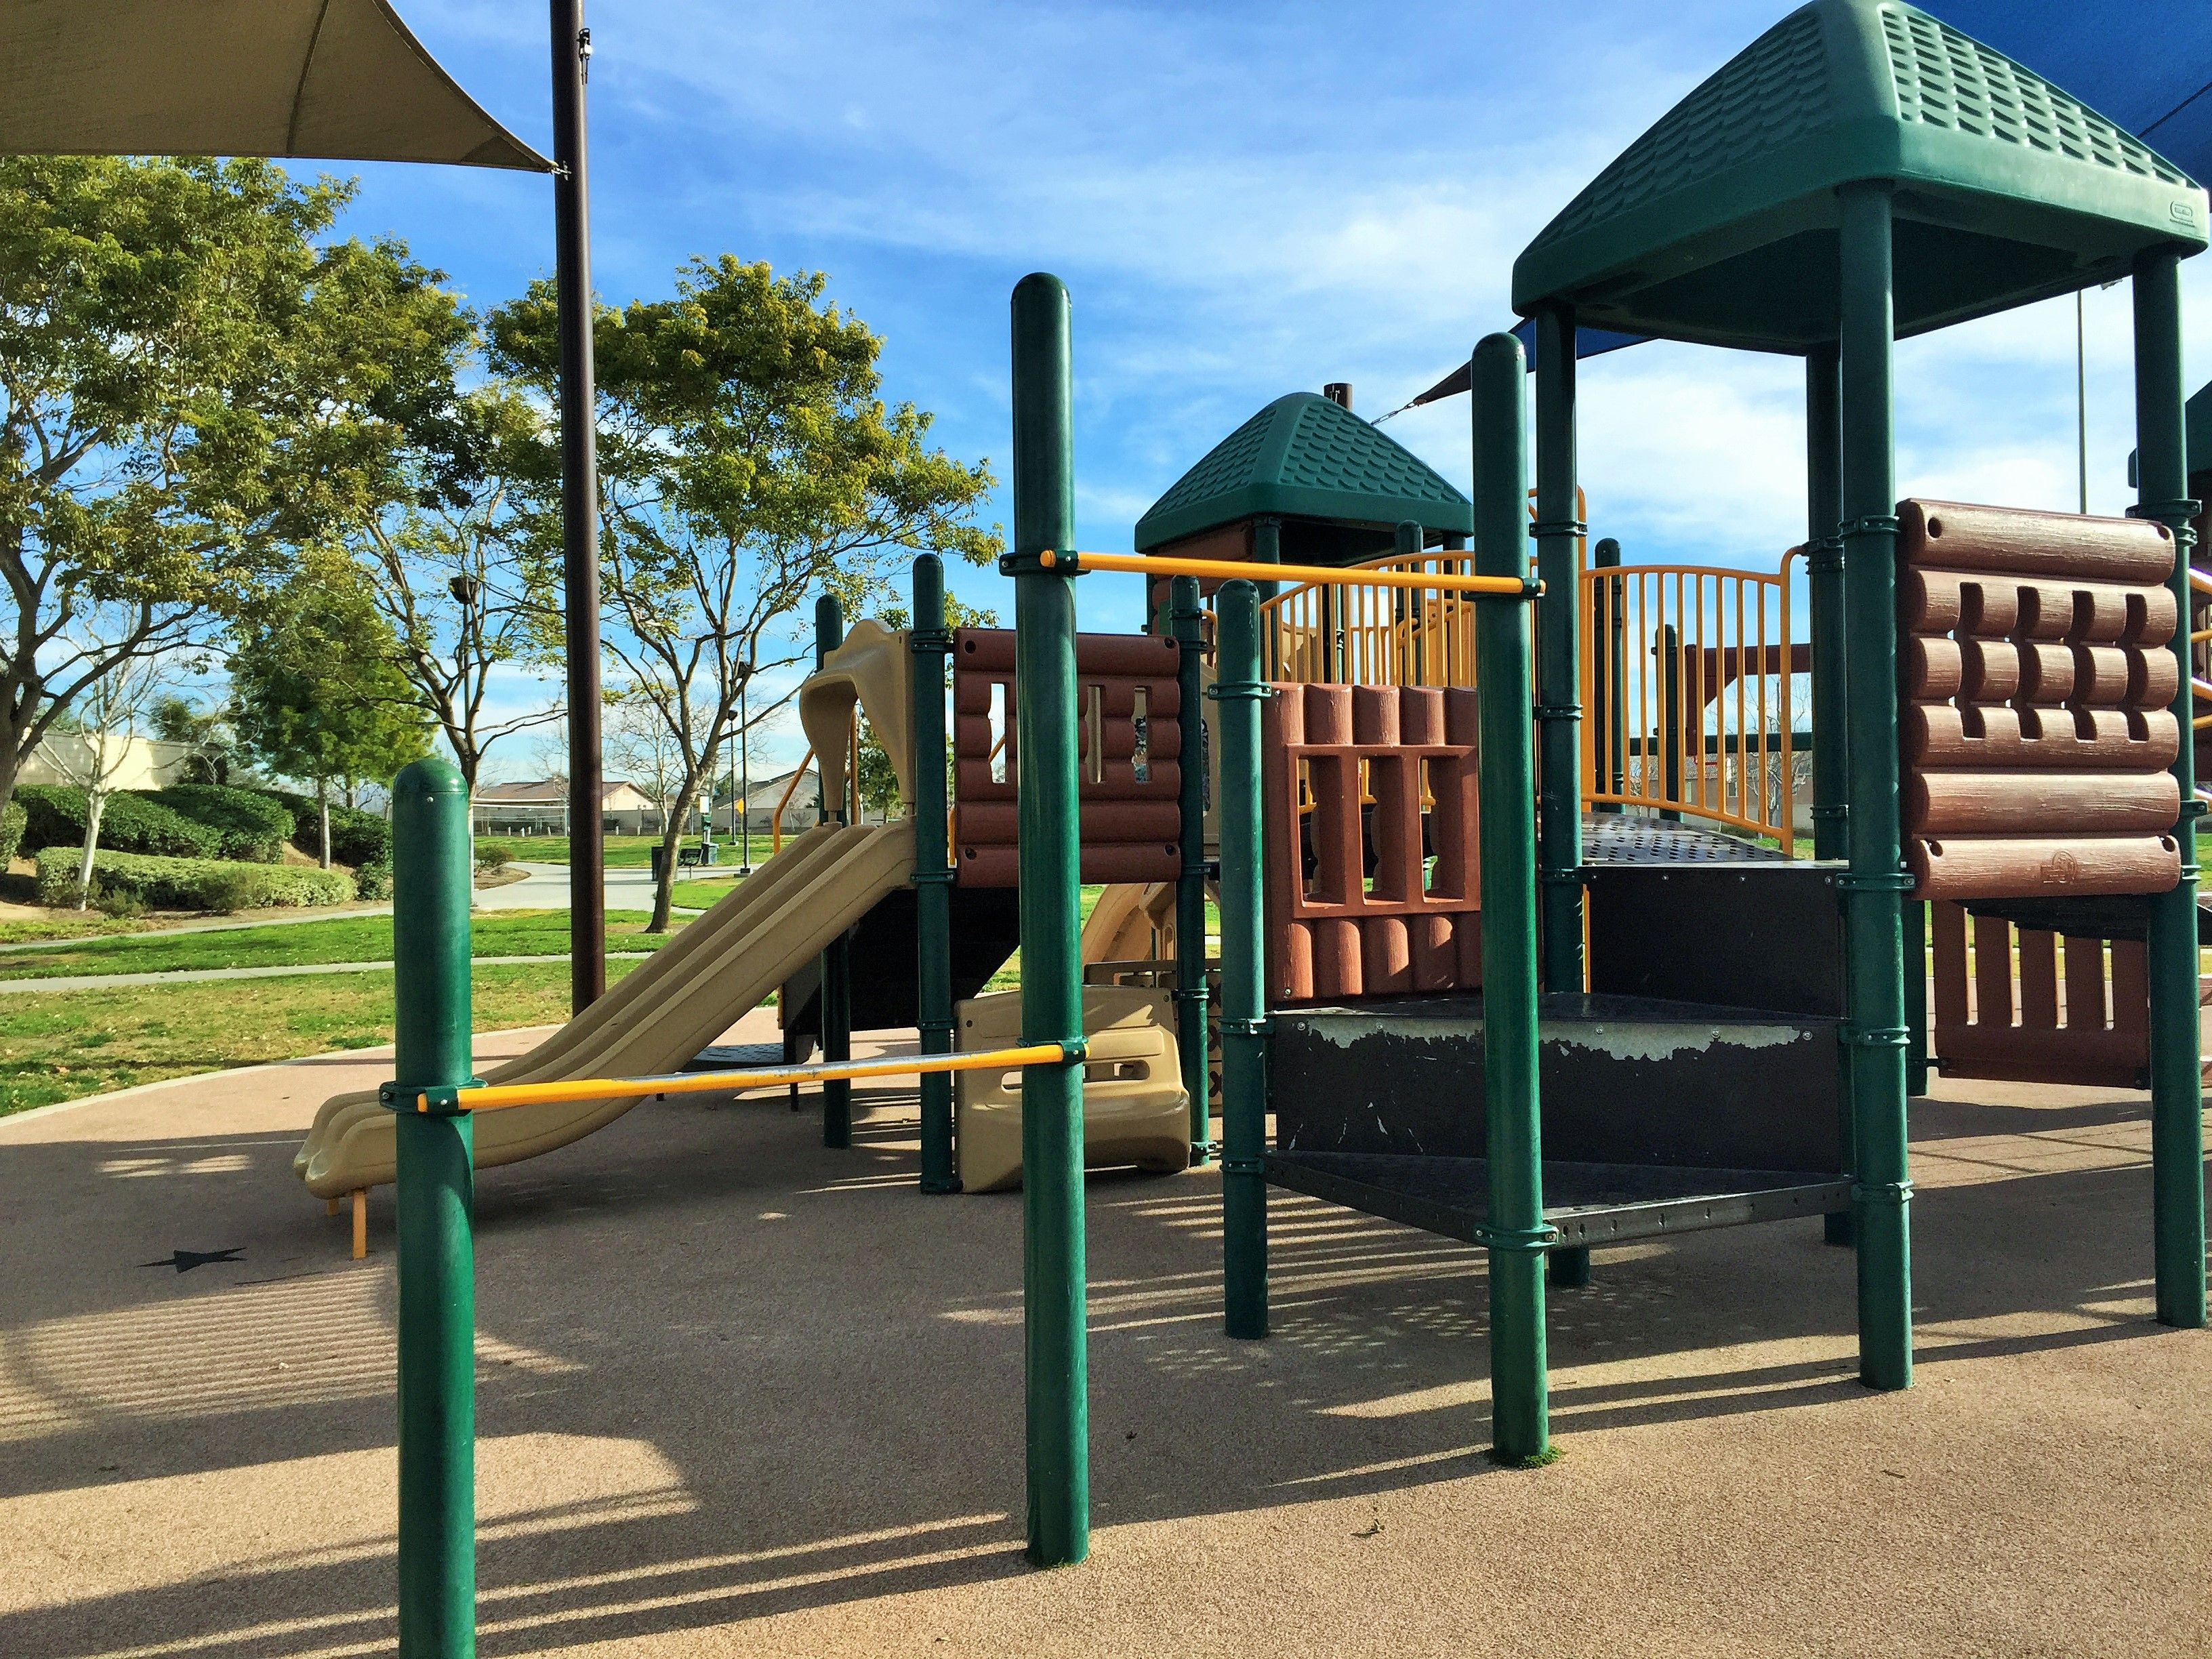 Two gymnastics bars on the playground for little kids at